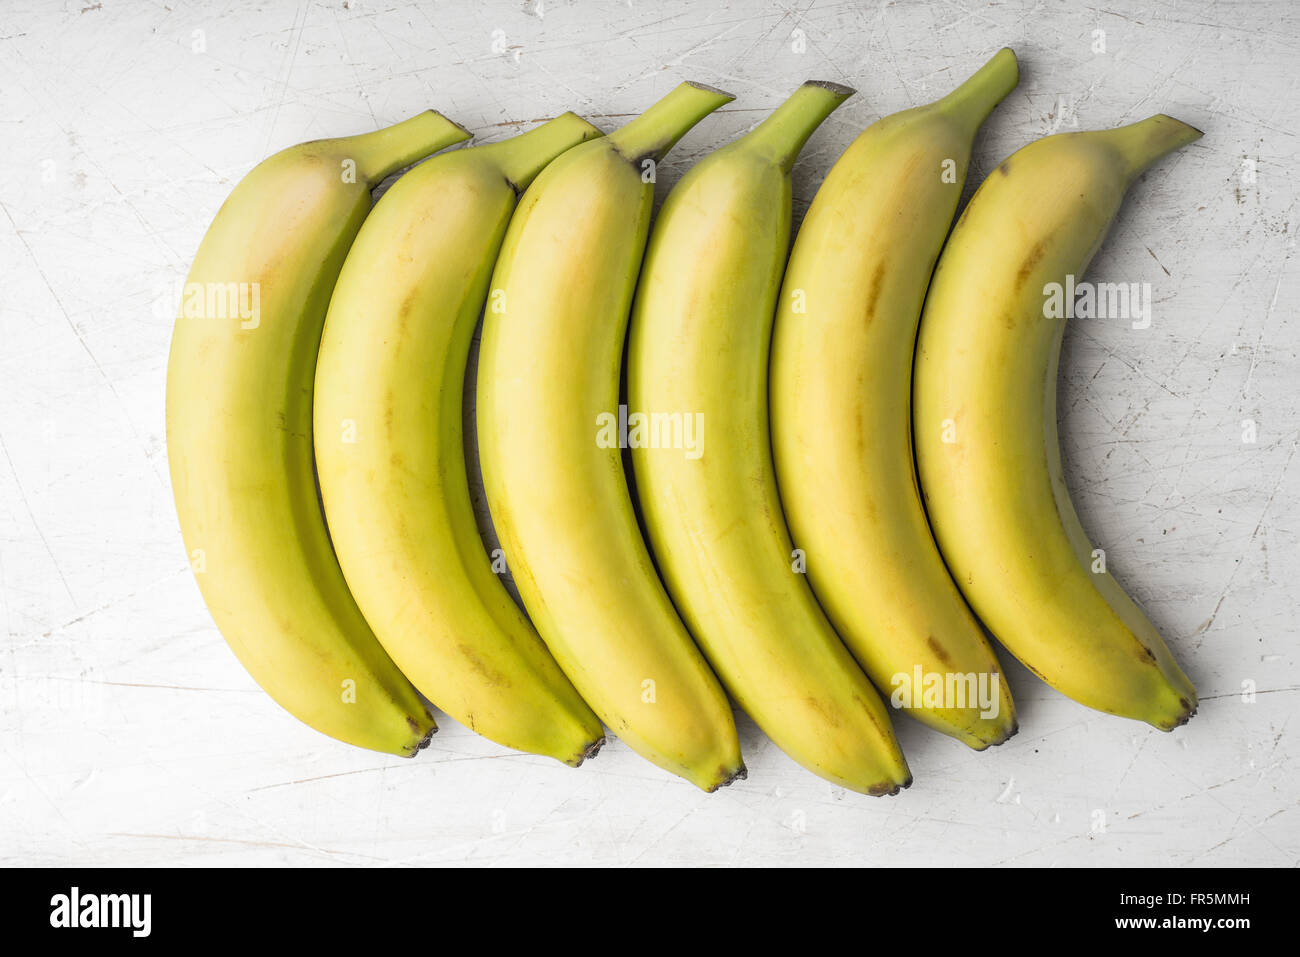 Yellow bananas are laid out in a rectangle horizontal - Stock Image